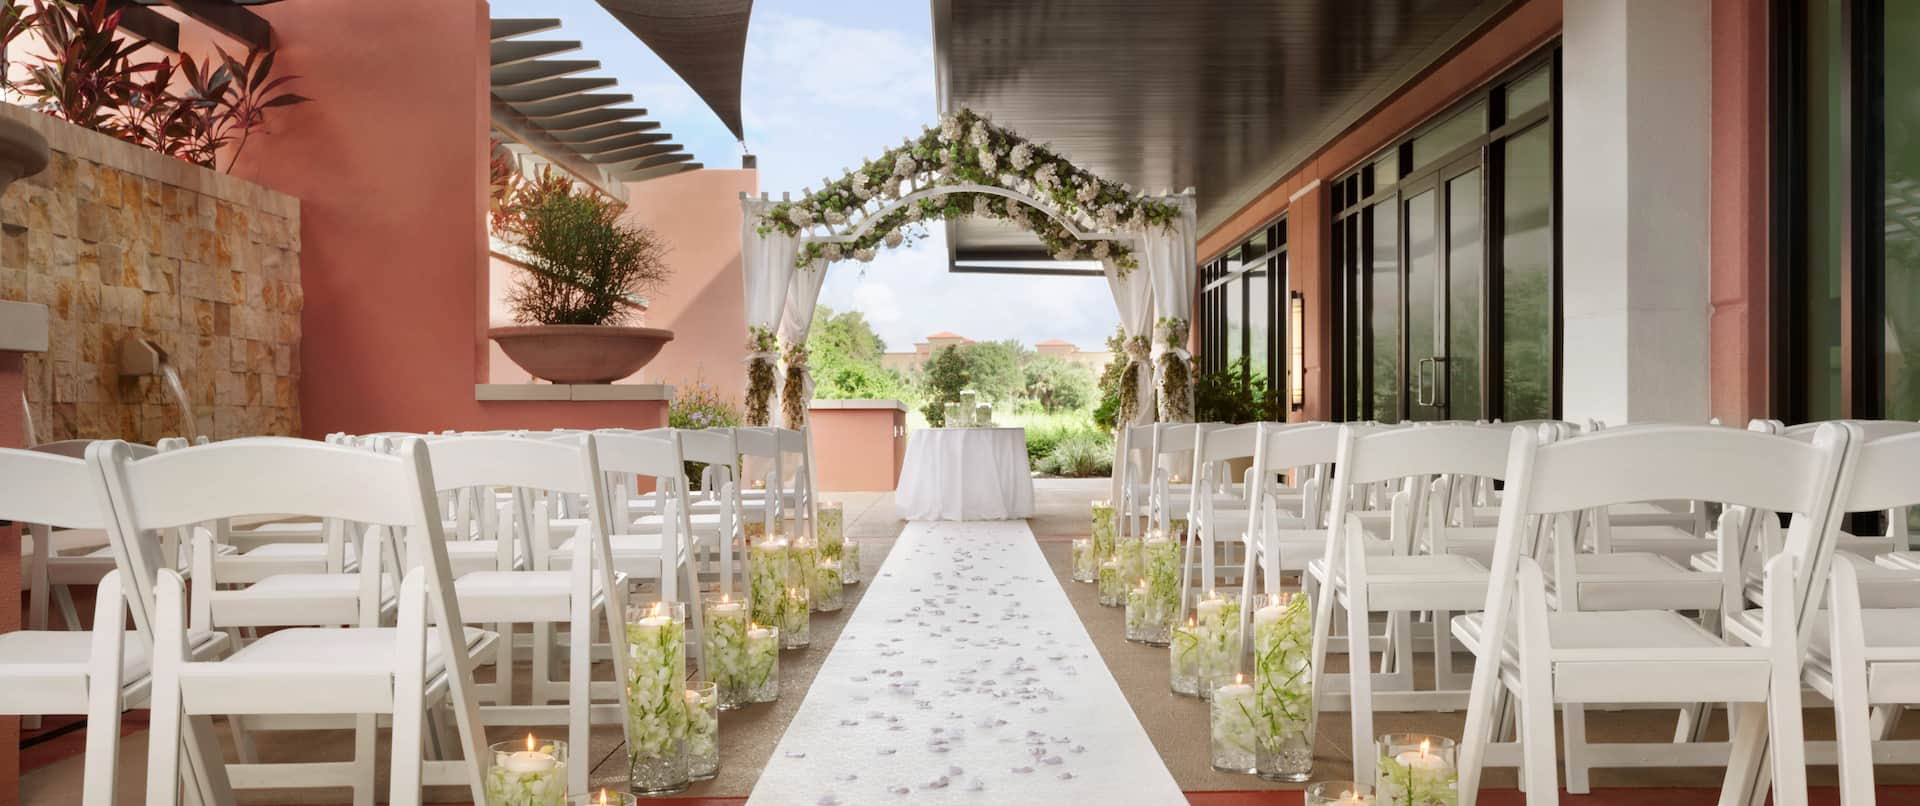 Outdoor Patio Wedding Reception Setup